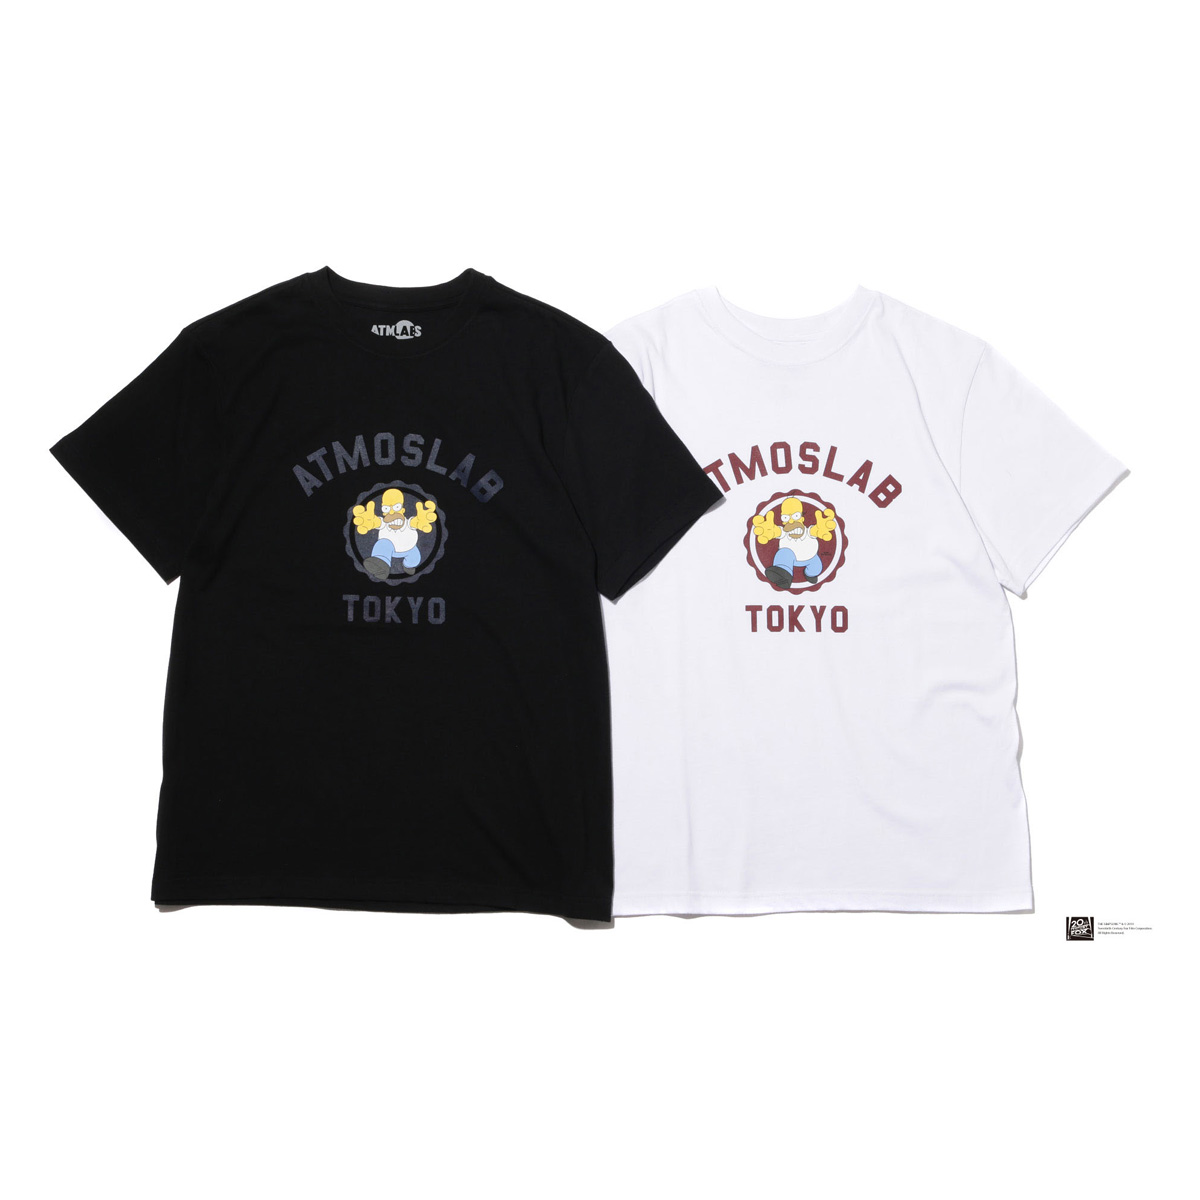 THE SIMPSONS x ATMOS LAB COLLEGE TEE (HOMER)